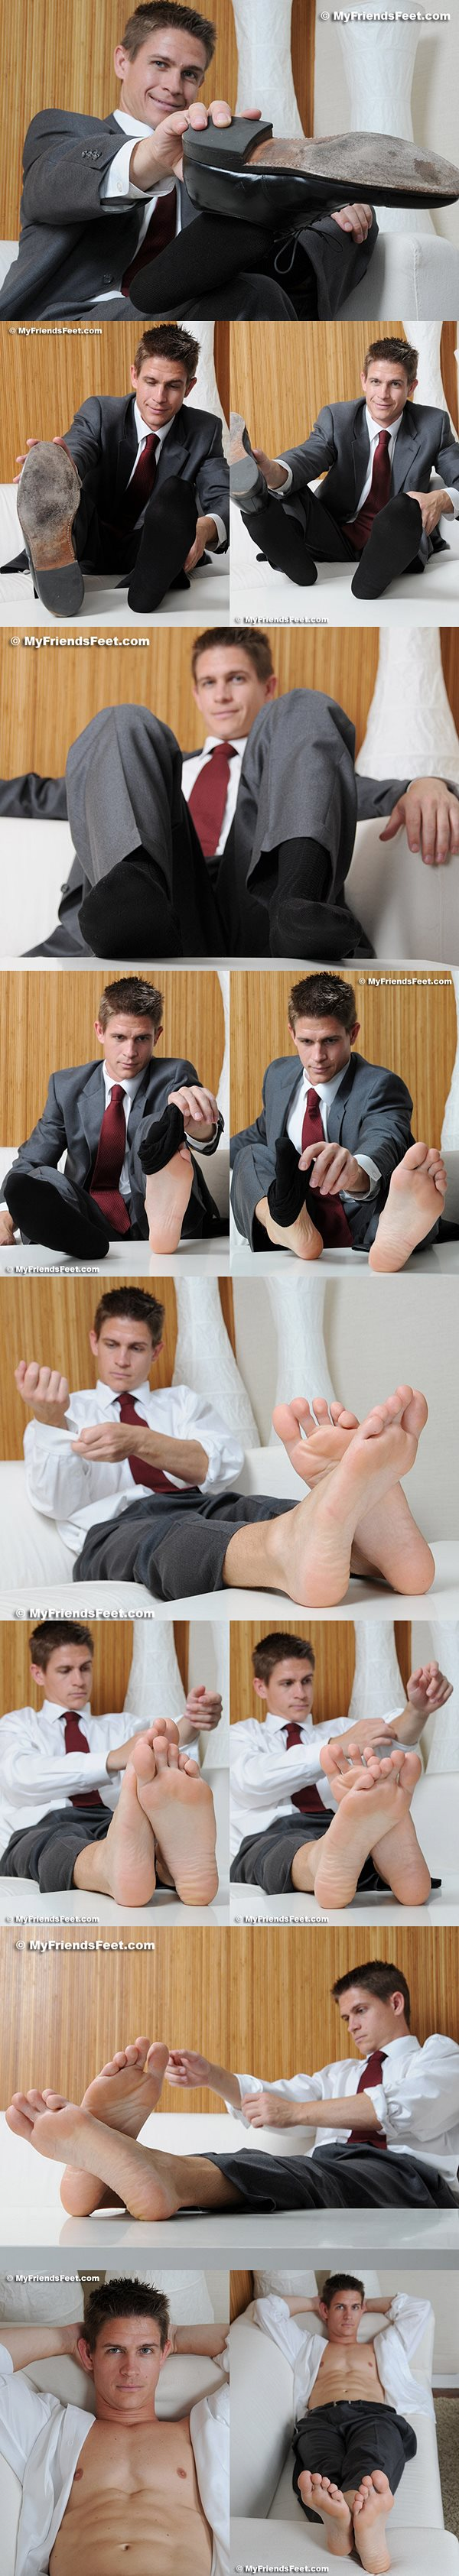 Handsome Andy's size 12s in dress socks and bare at Myfriendsfeet